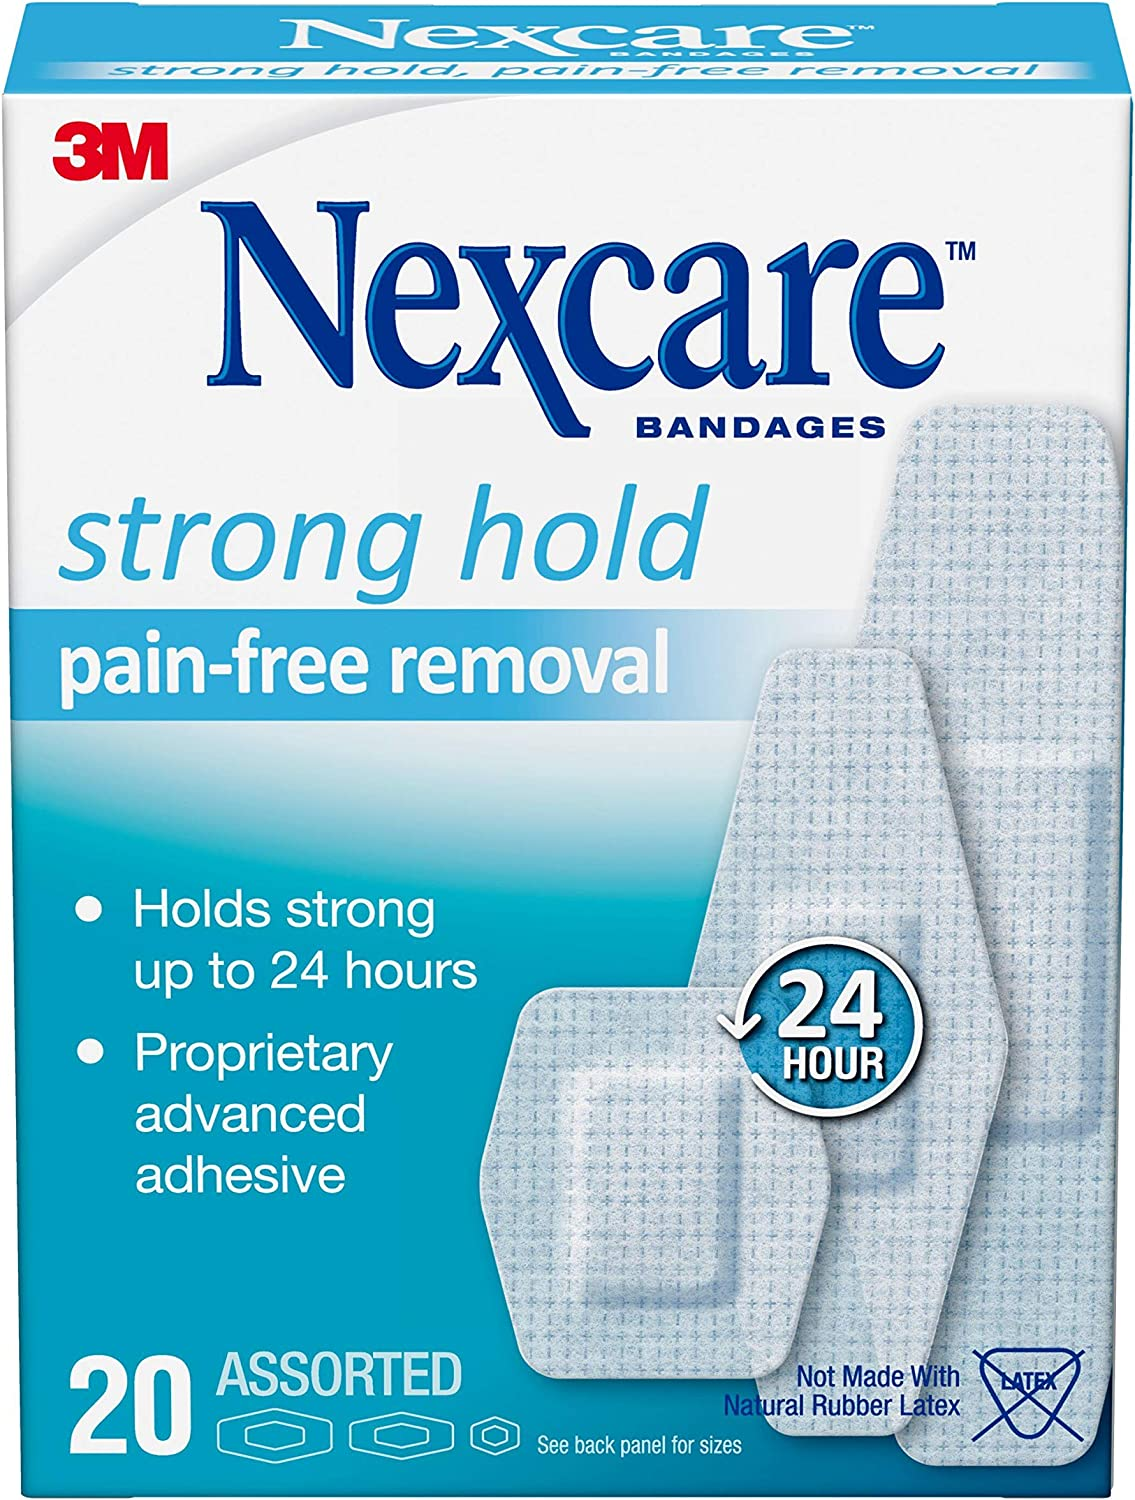 Nexcare Sensitive Skin Bandages Assorted Count Bo 20 WEB限定 激安超特価 Sizes Per